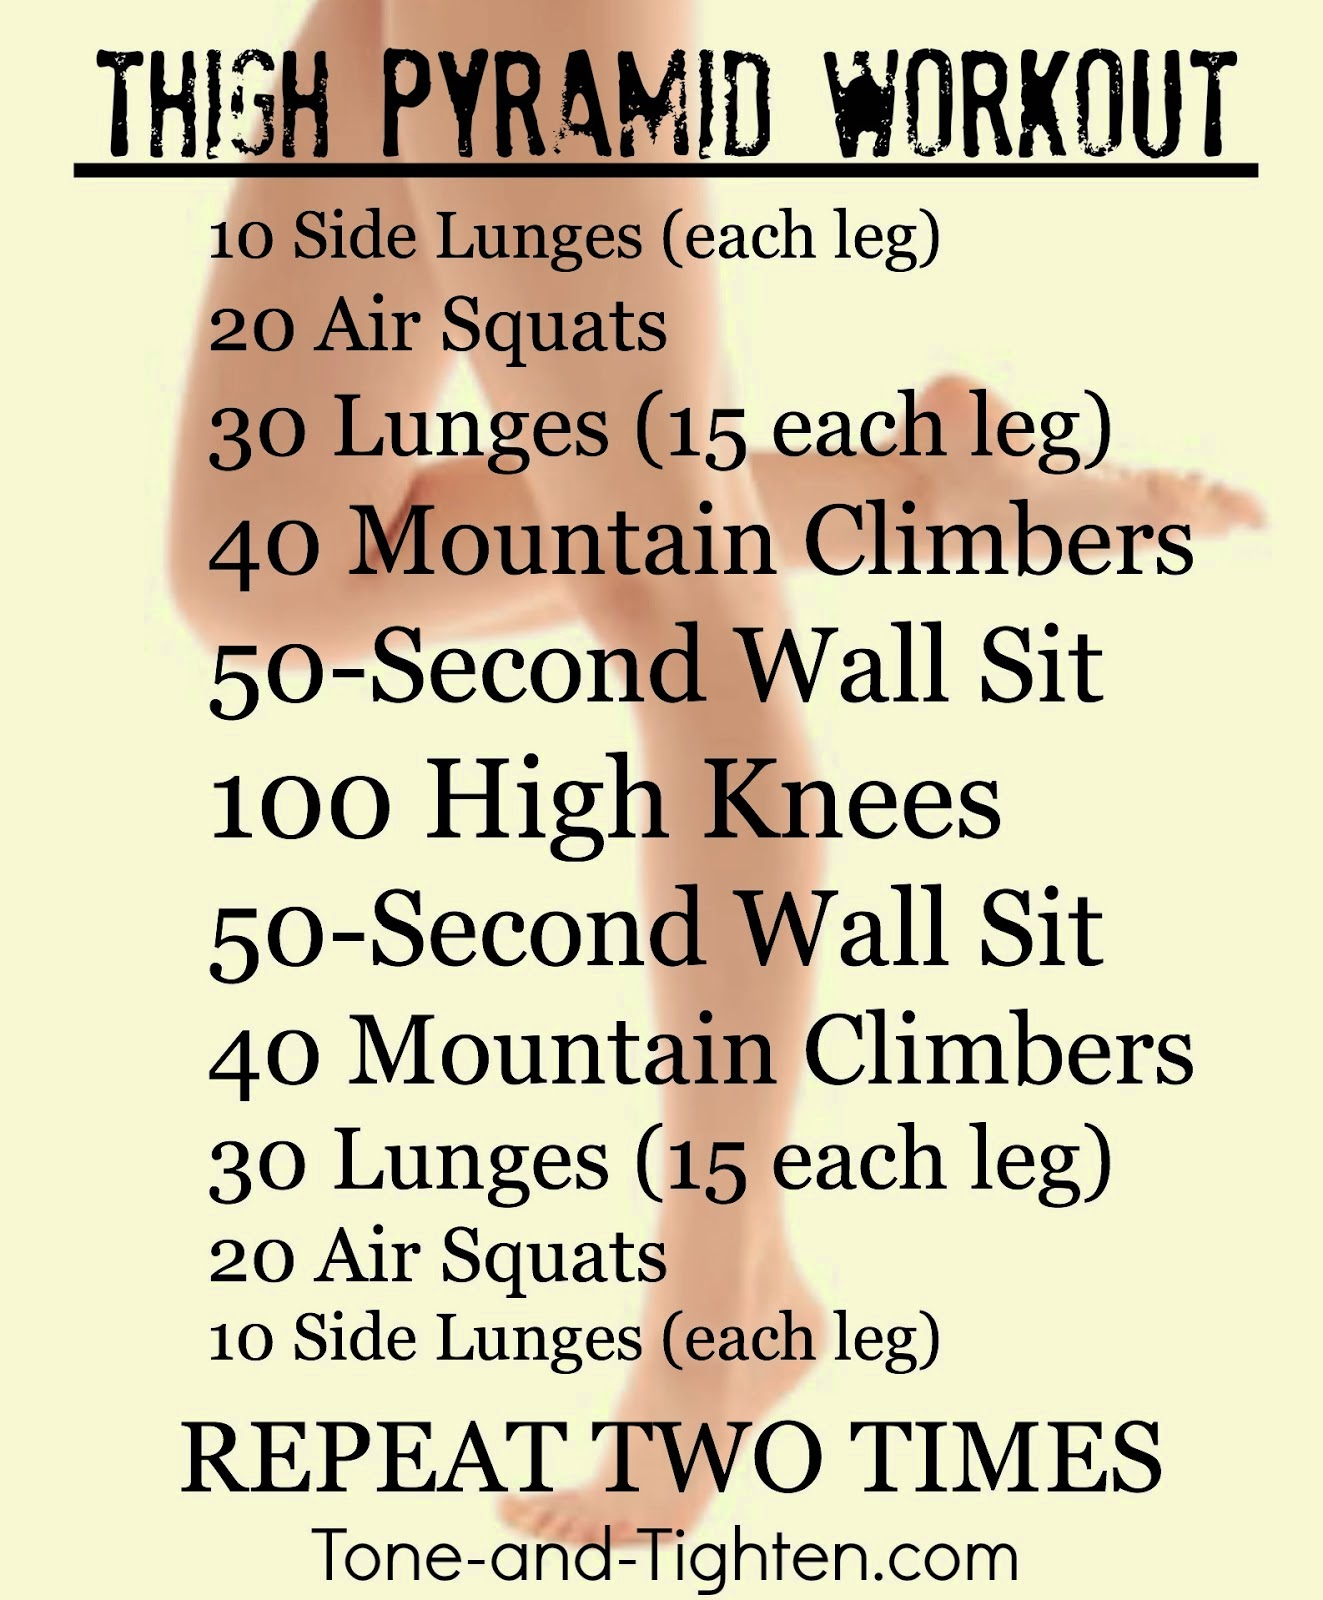 http://tone-and-tighten.com/2014/01/thigh-pyramid-workout.html